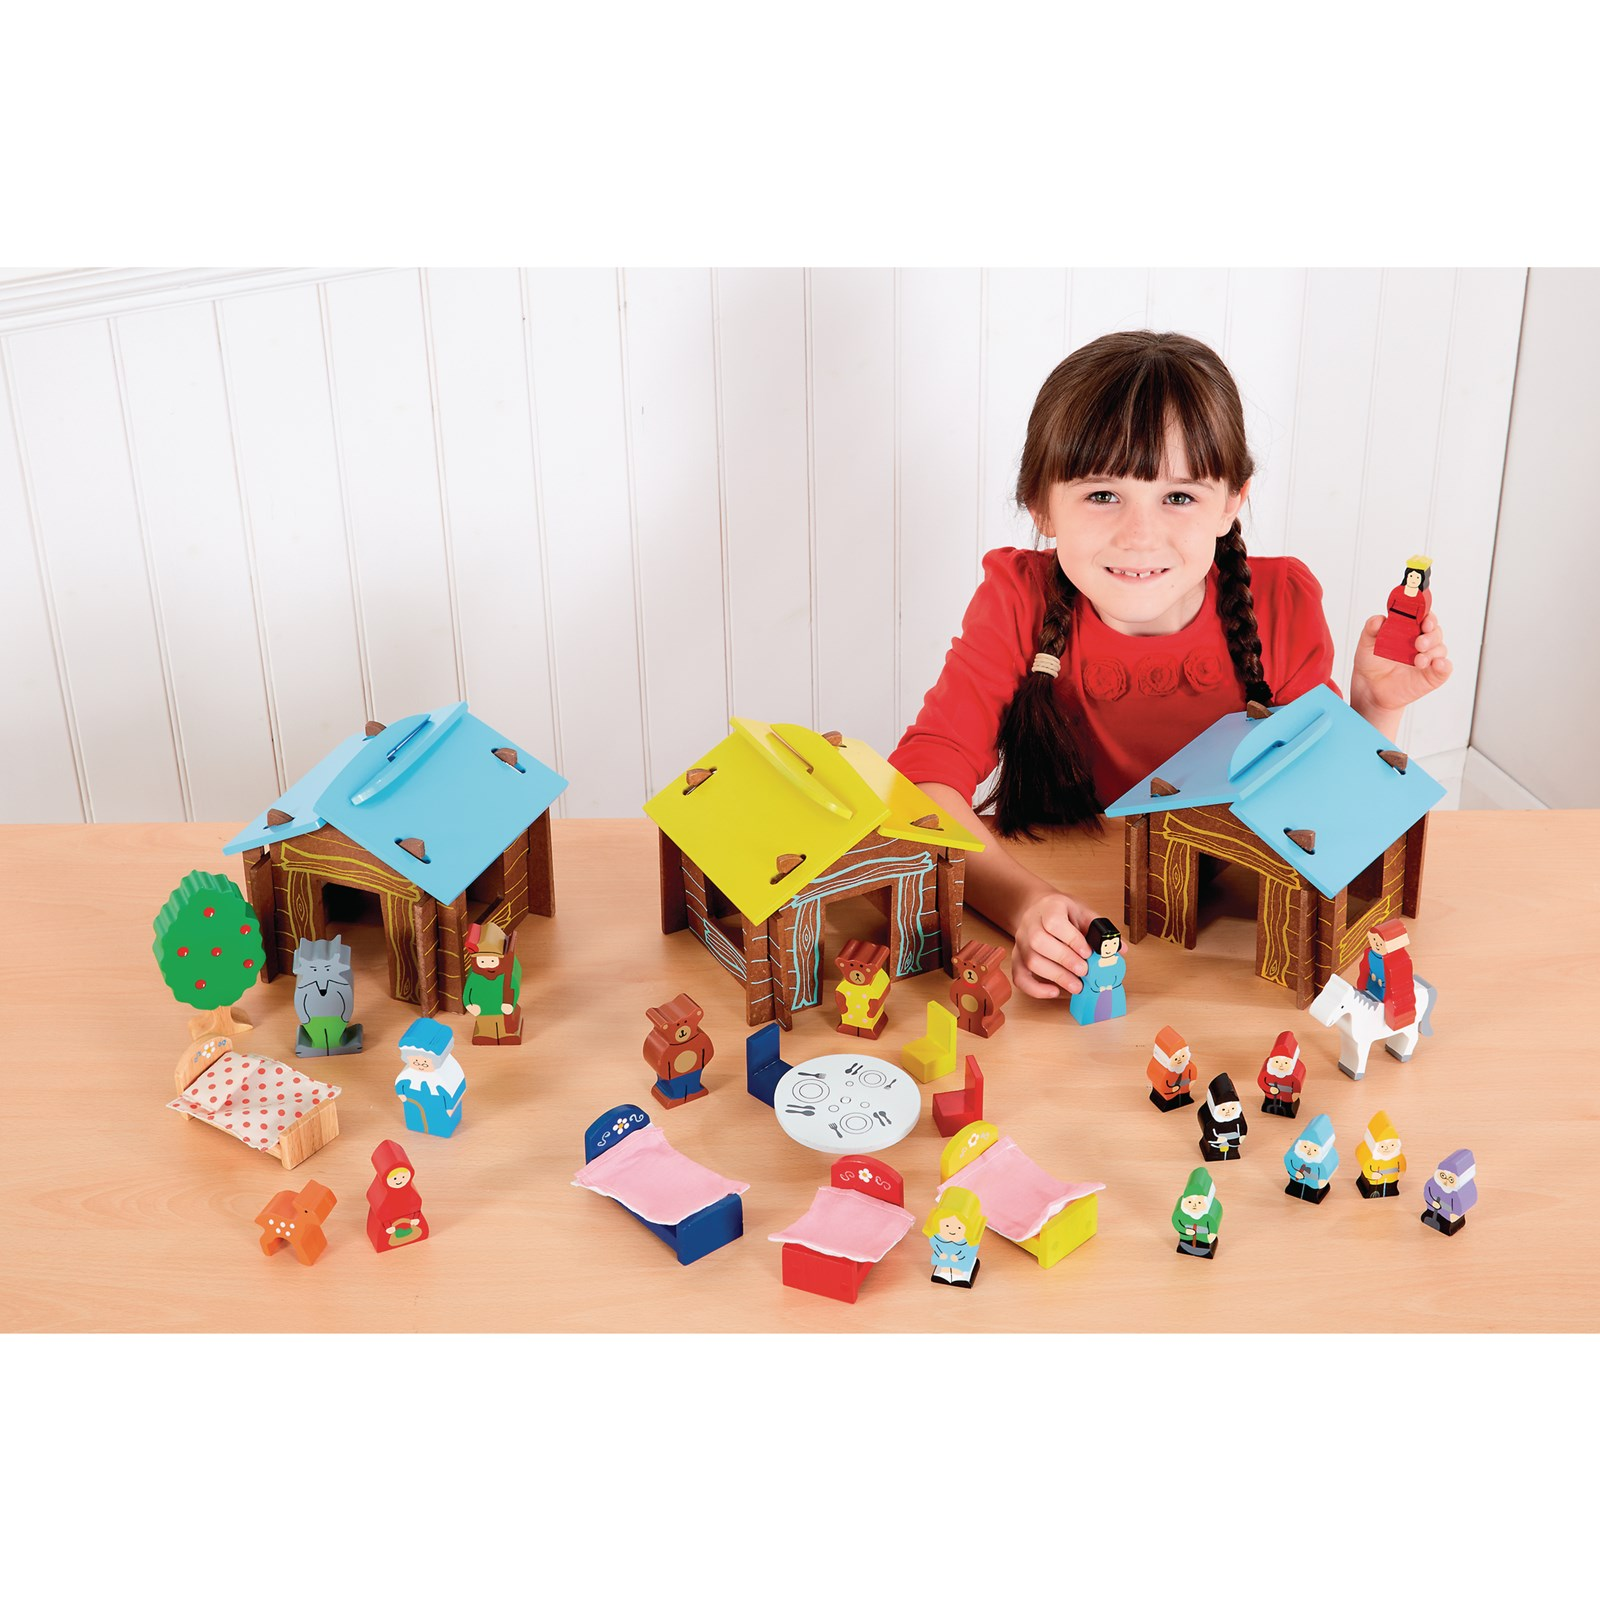 Storytelling Houses Special Offer Pack of 3